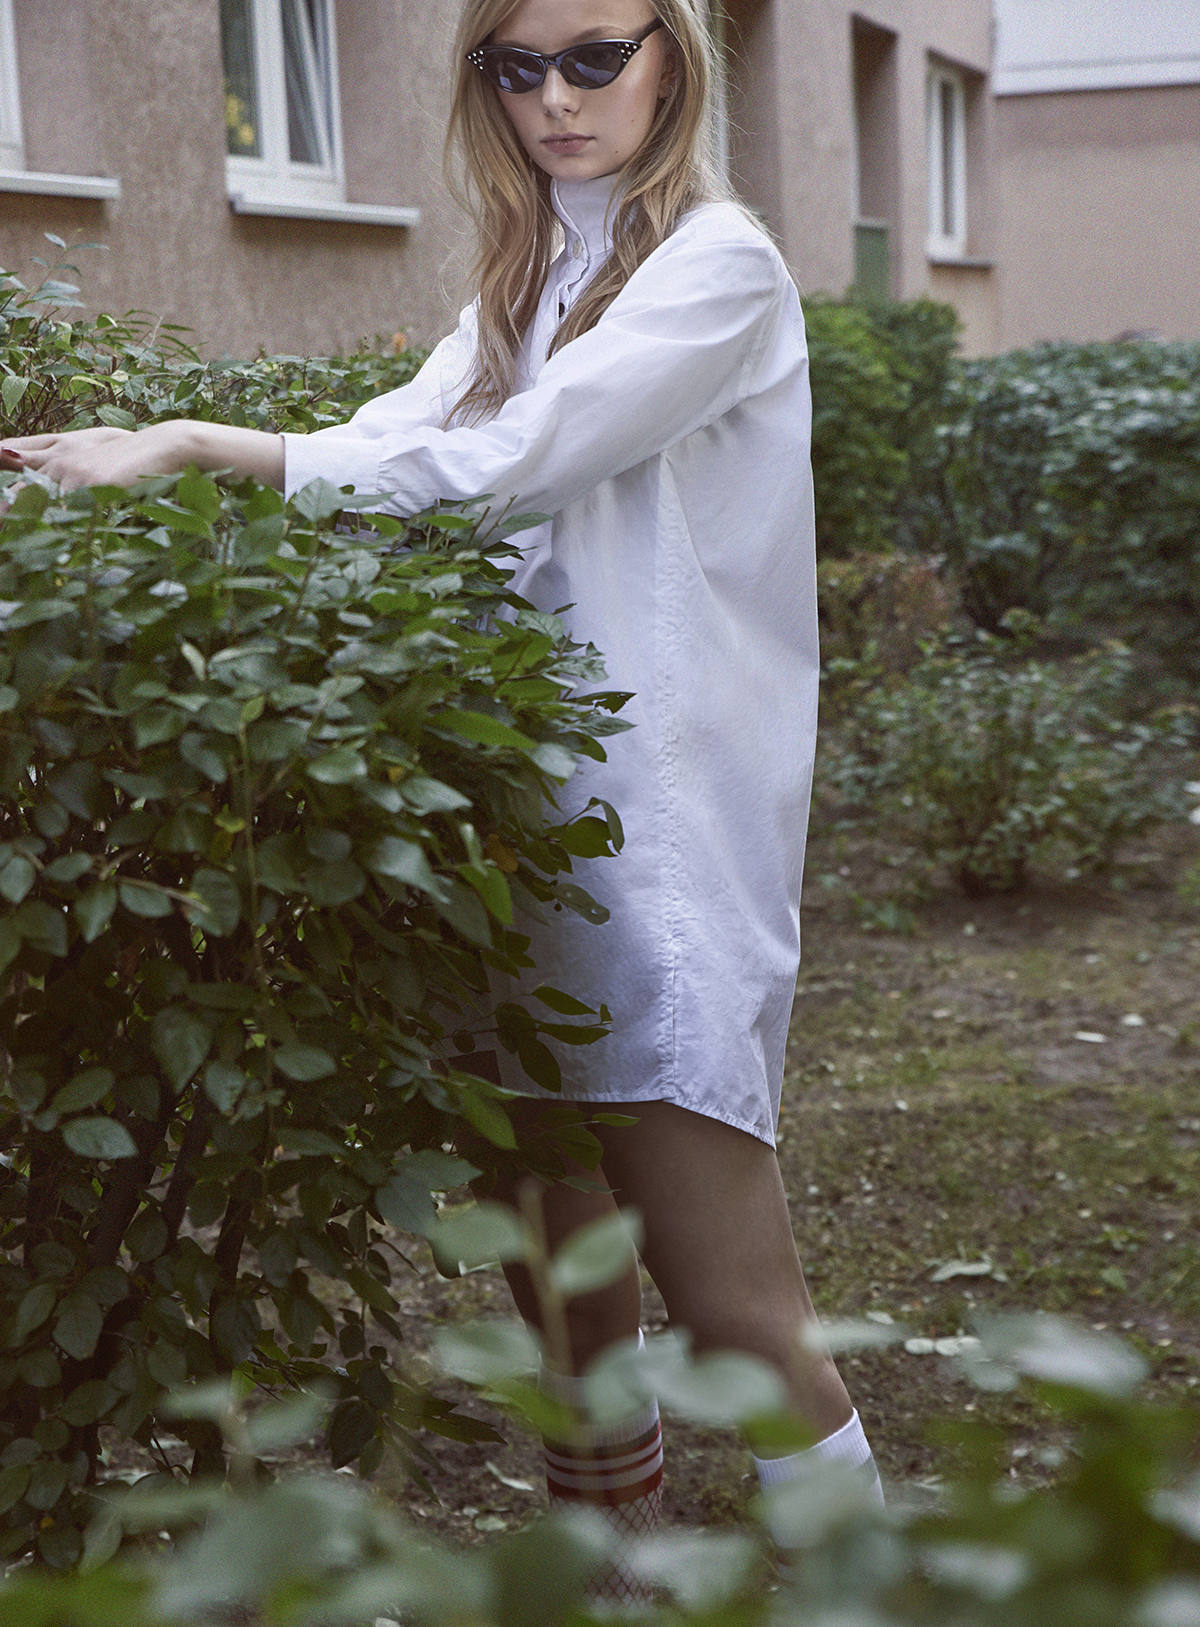 luxiders, luxiders magazine, sustainable, sustainability, eco textile art, craftsmanship, luxury, ecofashion, sustainable fashion, slow fashion, organic fashion, natural fashion, ethical fashion, eco fashion designers, organic certified cotton, gots, fashion magazine, sustainable fashion magazine, eco fashion magazine, green fashion magazine, ethical fashion magazine, fair fashion magazine, fair fashion, luxury fashion, sustainable luxury, best eco fashion, best green fashion, best sustainable fashion, best slow fashion, best social fashion, best ethical fashion, upcycled fashion, recycled fashion, circular fashion, circular economy, eco fashion designer, sustainable fashion brands, sustainable fashion designers, textil ecológico, lujo, alta costura, moda ecológica, moda sostenible, moda lenta, moda orgánica, moda natural, moda ética, diseñadores de moda ecológica, algodón orgánico certificado, gots, lana merino, revista de moda, revista de moda sostenible, revista de moda ecológica, revista de moda ética, revista de sostenibilidad, feria, feria de moda, Semana de la Moda ecológica de Berlin, Berlin Fashion Week, Eco Fashion Week Berlin, moda ecológica Alemania, moda verde Alemania, moda sostenible Alemania, moda lenta Alemania, moda social Alemania, moda ética Alemania, moda circular, economía circular, diseñadores de moda sostenible, Alemania, eco Textilkunst, Handwerkskunst, Luxus, Haute Couture, ecofashion, nachhaltige Mode, langsame Mode, organische Mode, natürliche Mode, ethische Mode, Mode mit Gemüse, Textilkunst, Atelier Zuhal, Bio-Alpaka, Öko-Designer, Bio-zertifizierte Baumwolle, Gots , Merinowolle, Op-shops, Vintage-Mode, Secondhand-Mode, Modezeitschrift, Sustainable Fashion Magazin, Eco Fashion Magazin, Green Fashion Magazin, Ethical Fashion Magazin, Fair Fashion Magazin, Fair Fashion, Eco Fashion Week Deutschland, Eco Fashion Deutschland, grüne Mode Deutschland, nachhaltige Mode Deutschland, langsame Mode Deutschland, soziale Mode Deutschland, ethische Mode Deutschland, Upcycled Mode, recycelte Mode, kreisförmige Mode, organische Haute Couture, Öko Modedesignerin, nachhaltige Modemarken Deutschland, nachhaltige Modedesigner Deutschland, Greenshowroom, Messe Frankfurt, Ethical Fashion Show Berlin, neonyt, suite 13, nadja kiess, Re.Sustain, Graciela Huam, Sanikai, Cus, Alexandra Svendsen, Harolds, Ray Musgo, Sustainable shoes, Goodsociety, Mila.Vert, Anukoo, MaydinChina, Hoboshoes, Alexandra Svendsen, Trippen, Wild-Fawn, Nadja Kiess, Lana Organics, Movinun, Greta Andersson, street style, fashion editorial